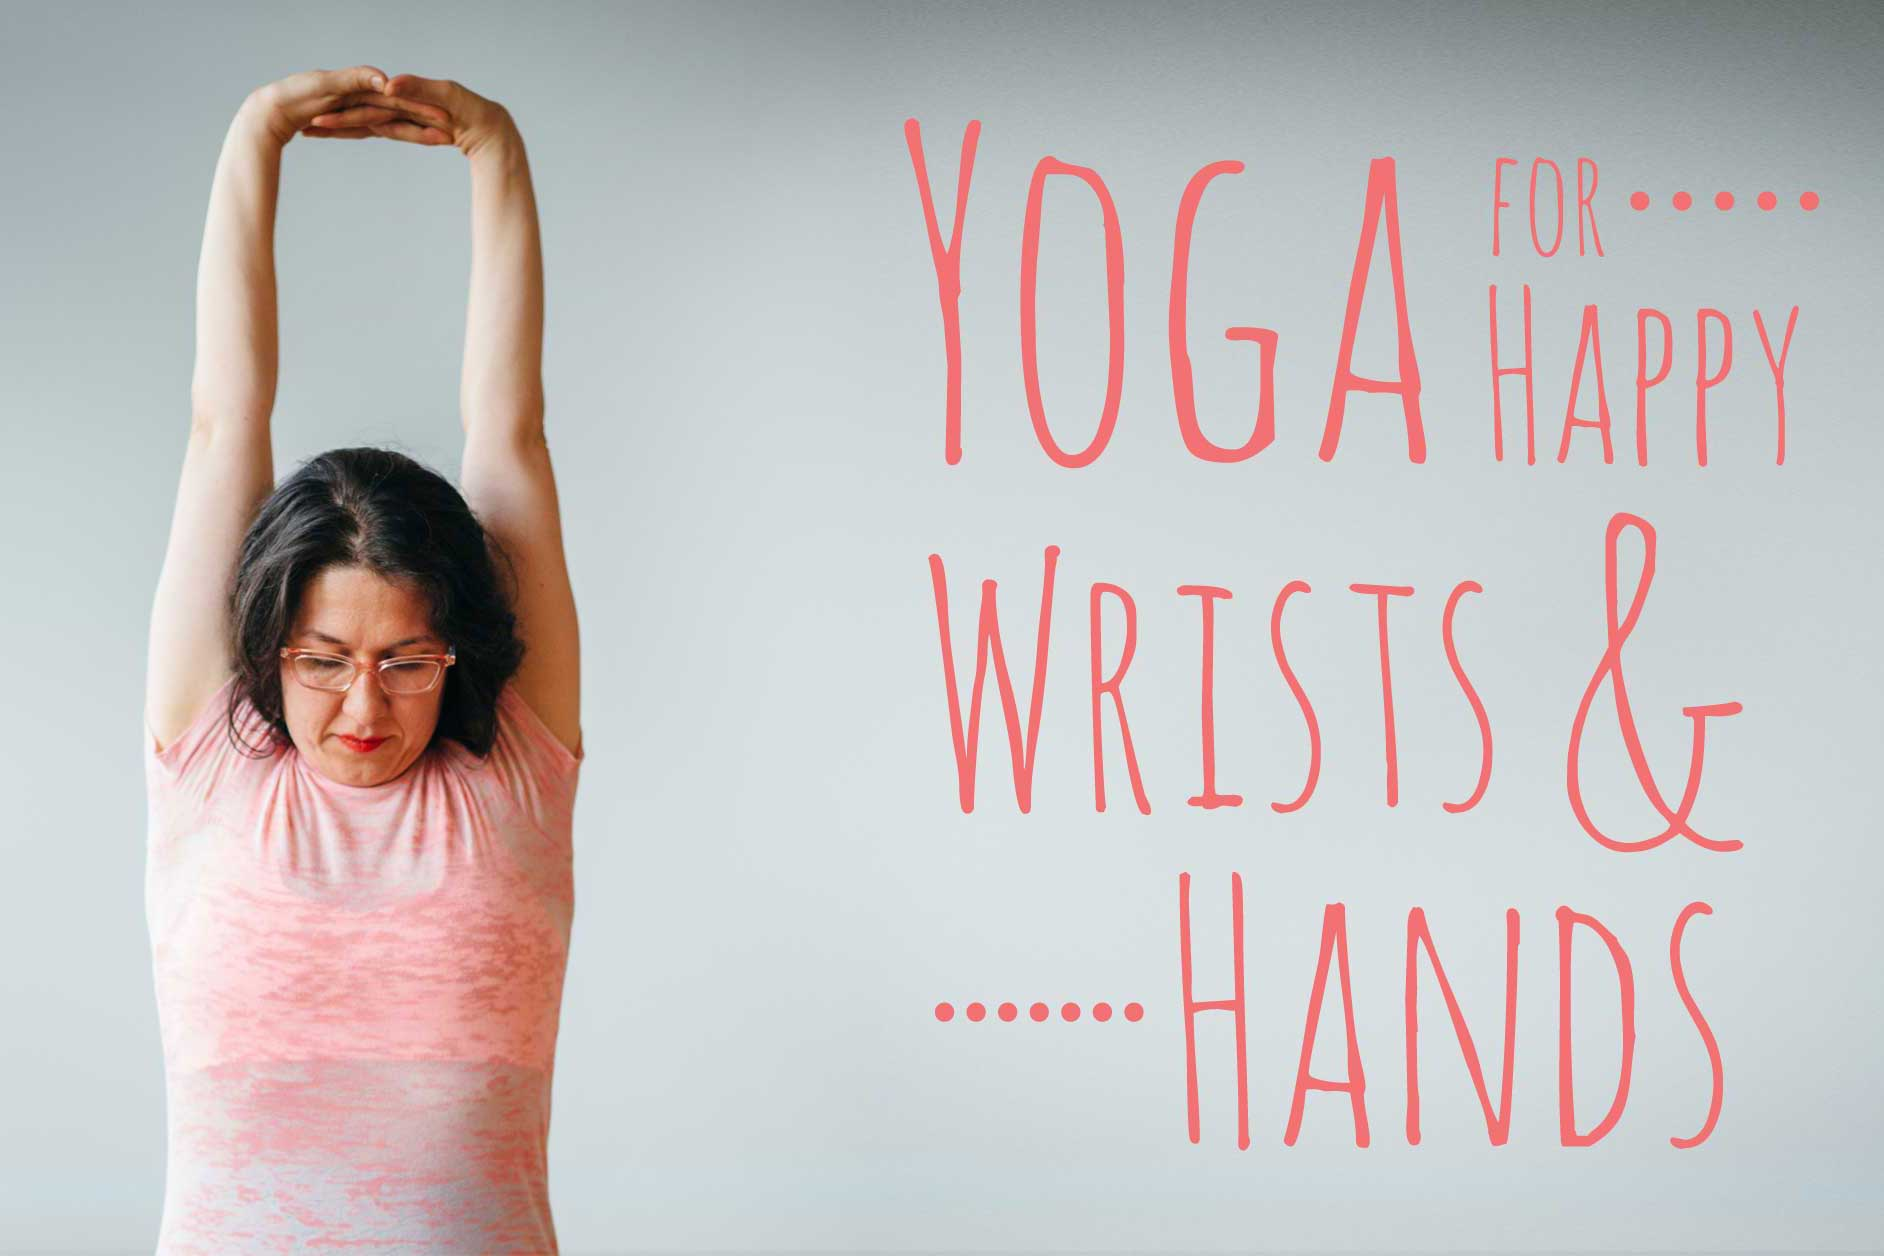 Yoga for Happy Wrists and Hands | Live Yoga Now